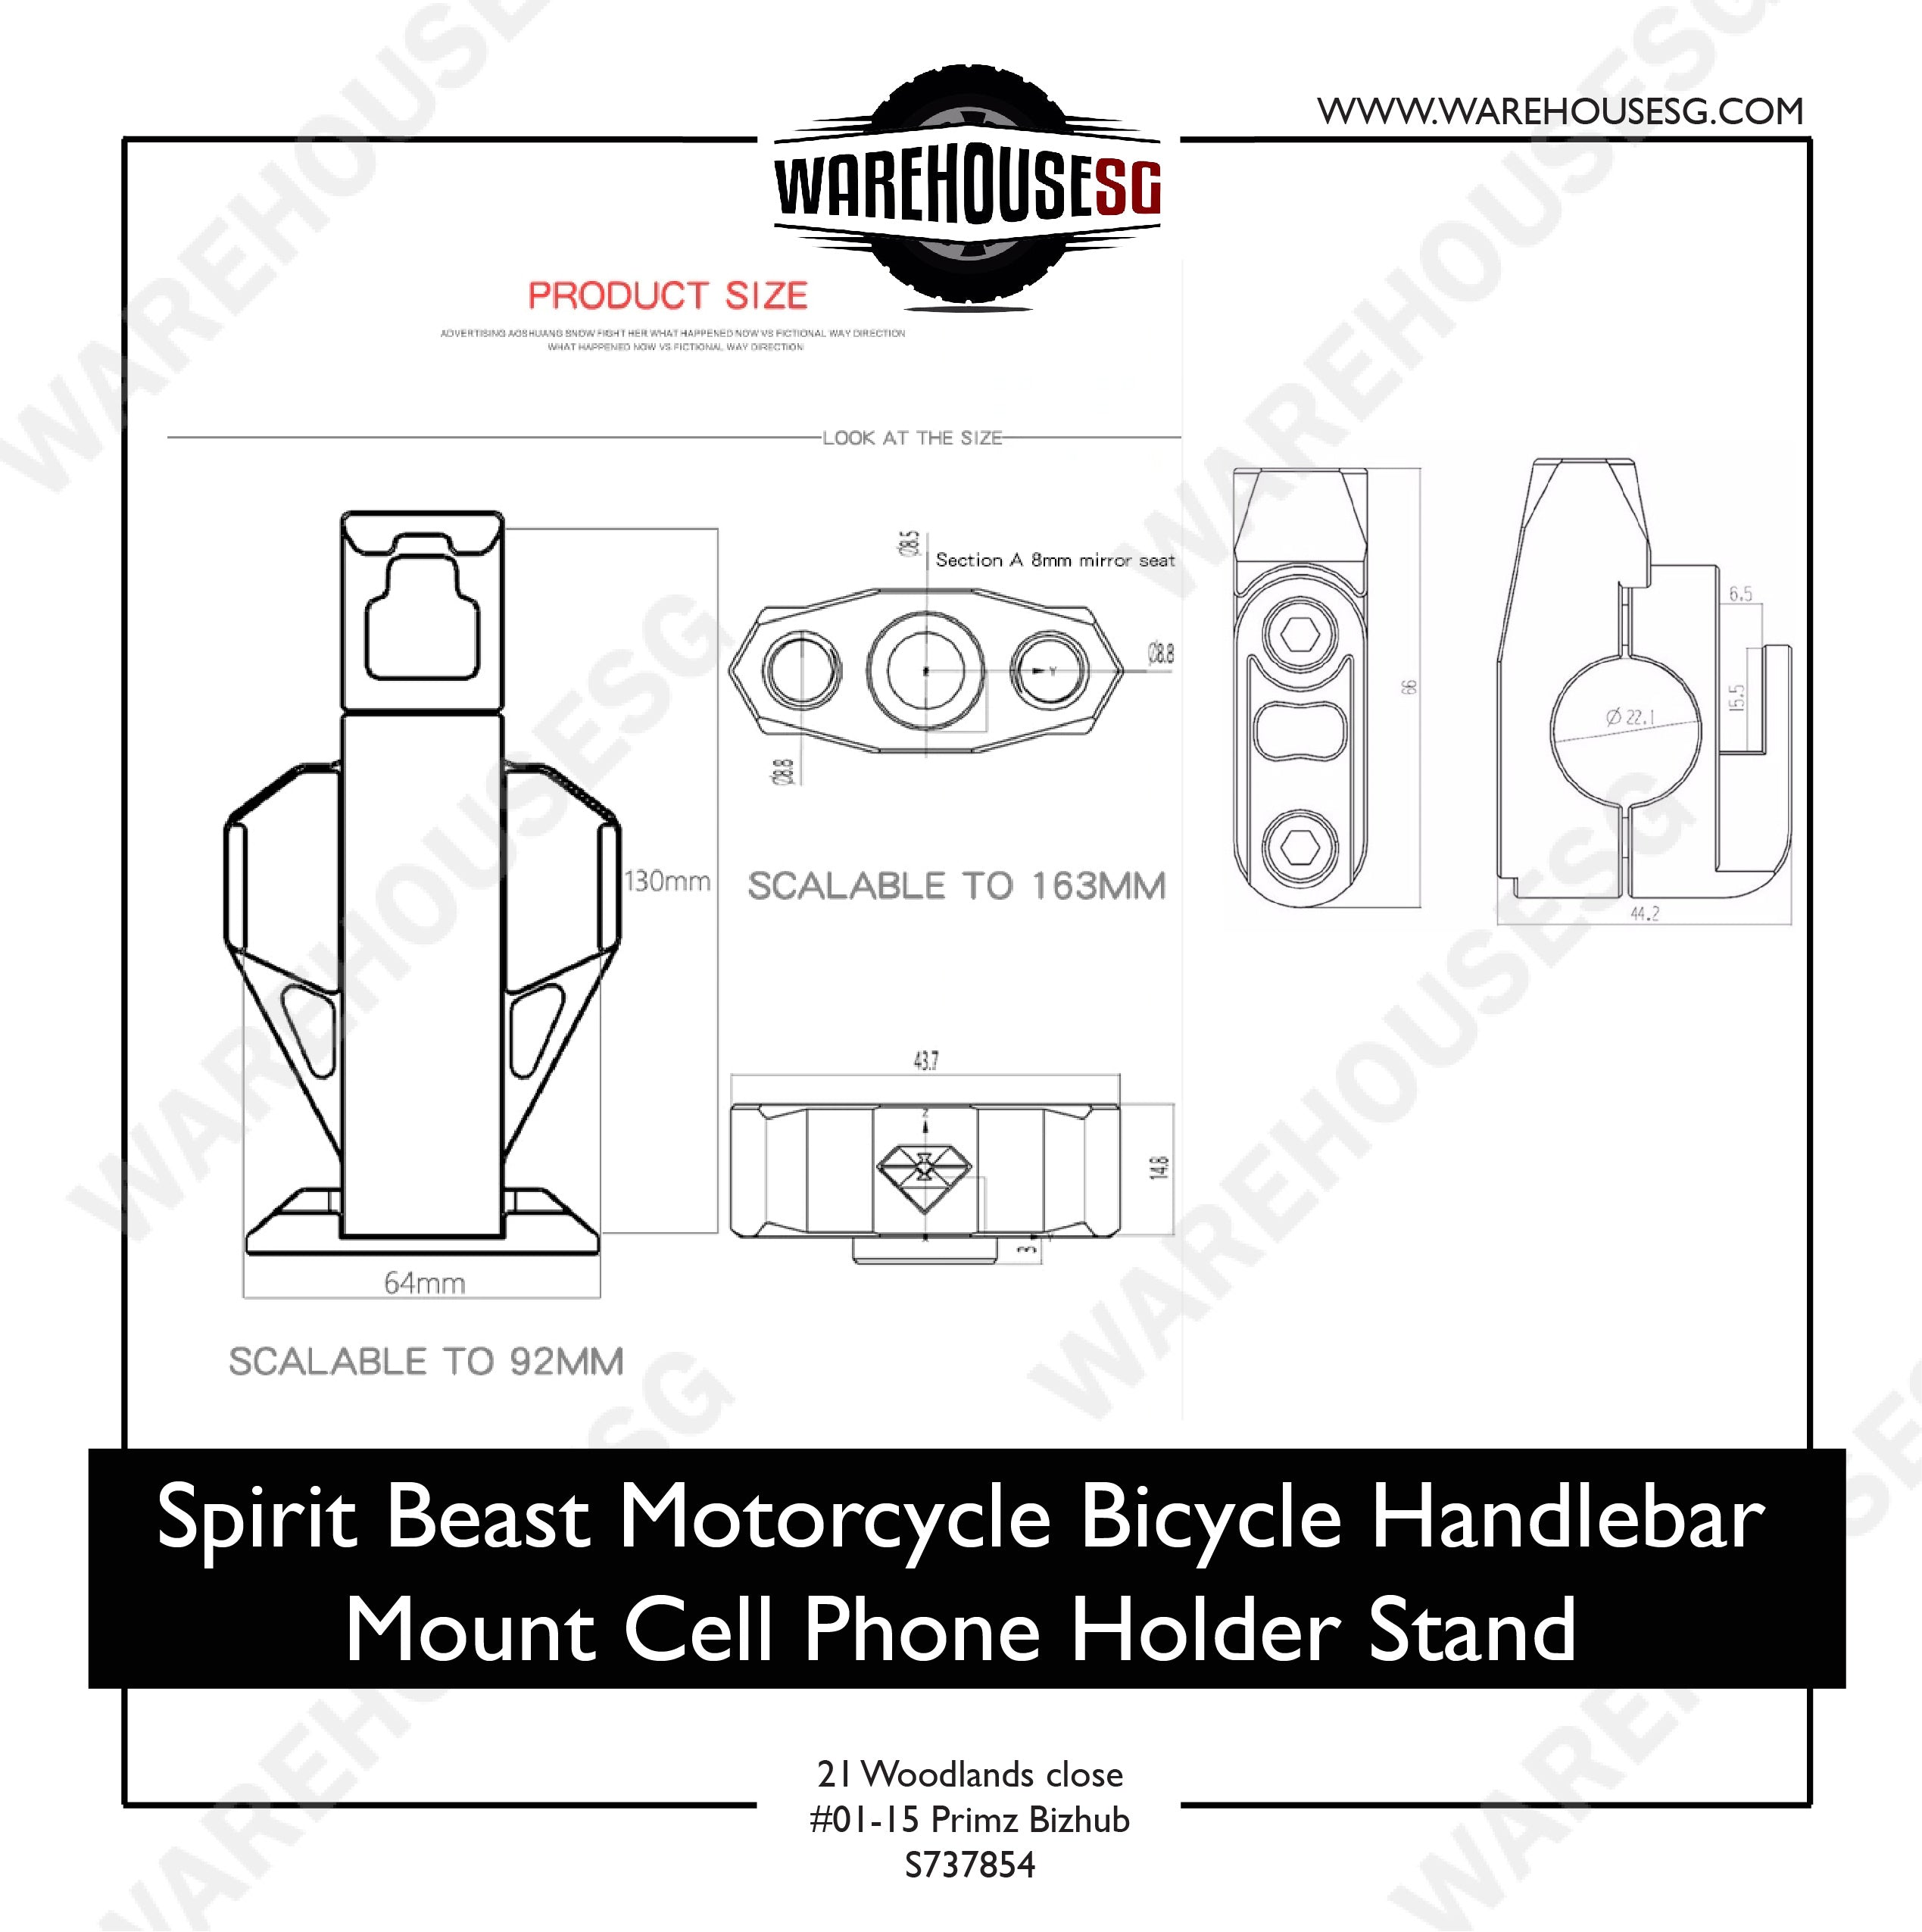 Spirit Beast Motorcycle Bicycle Handlebar Mount Cell Phone Holder Stand